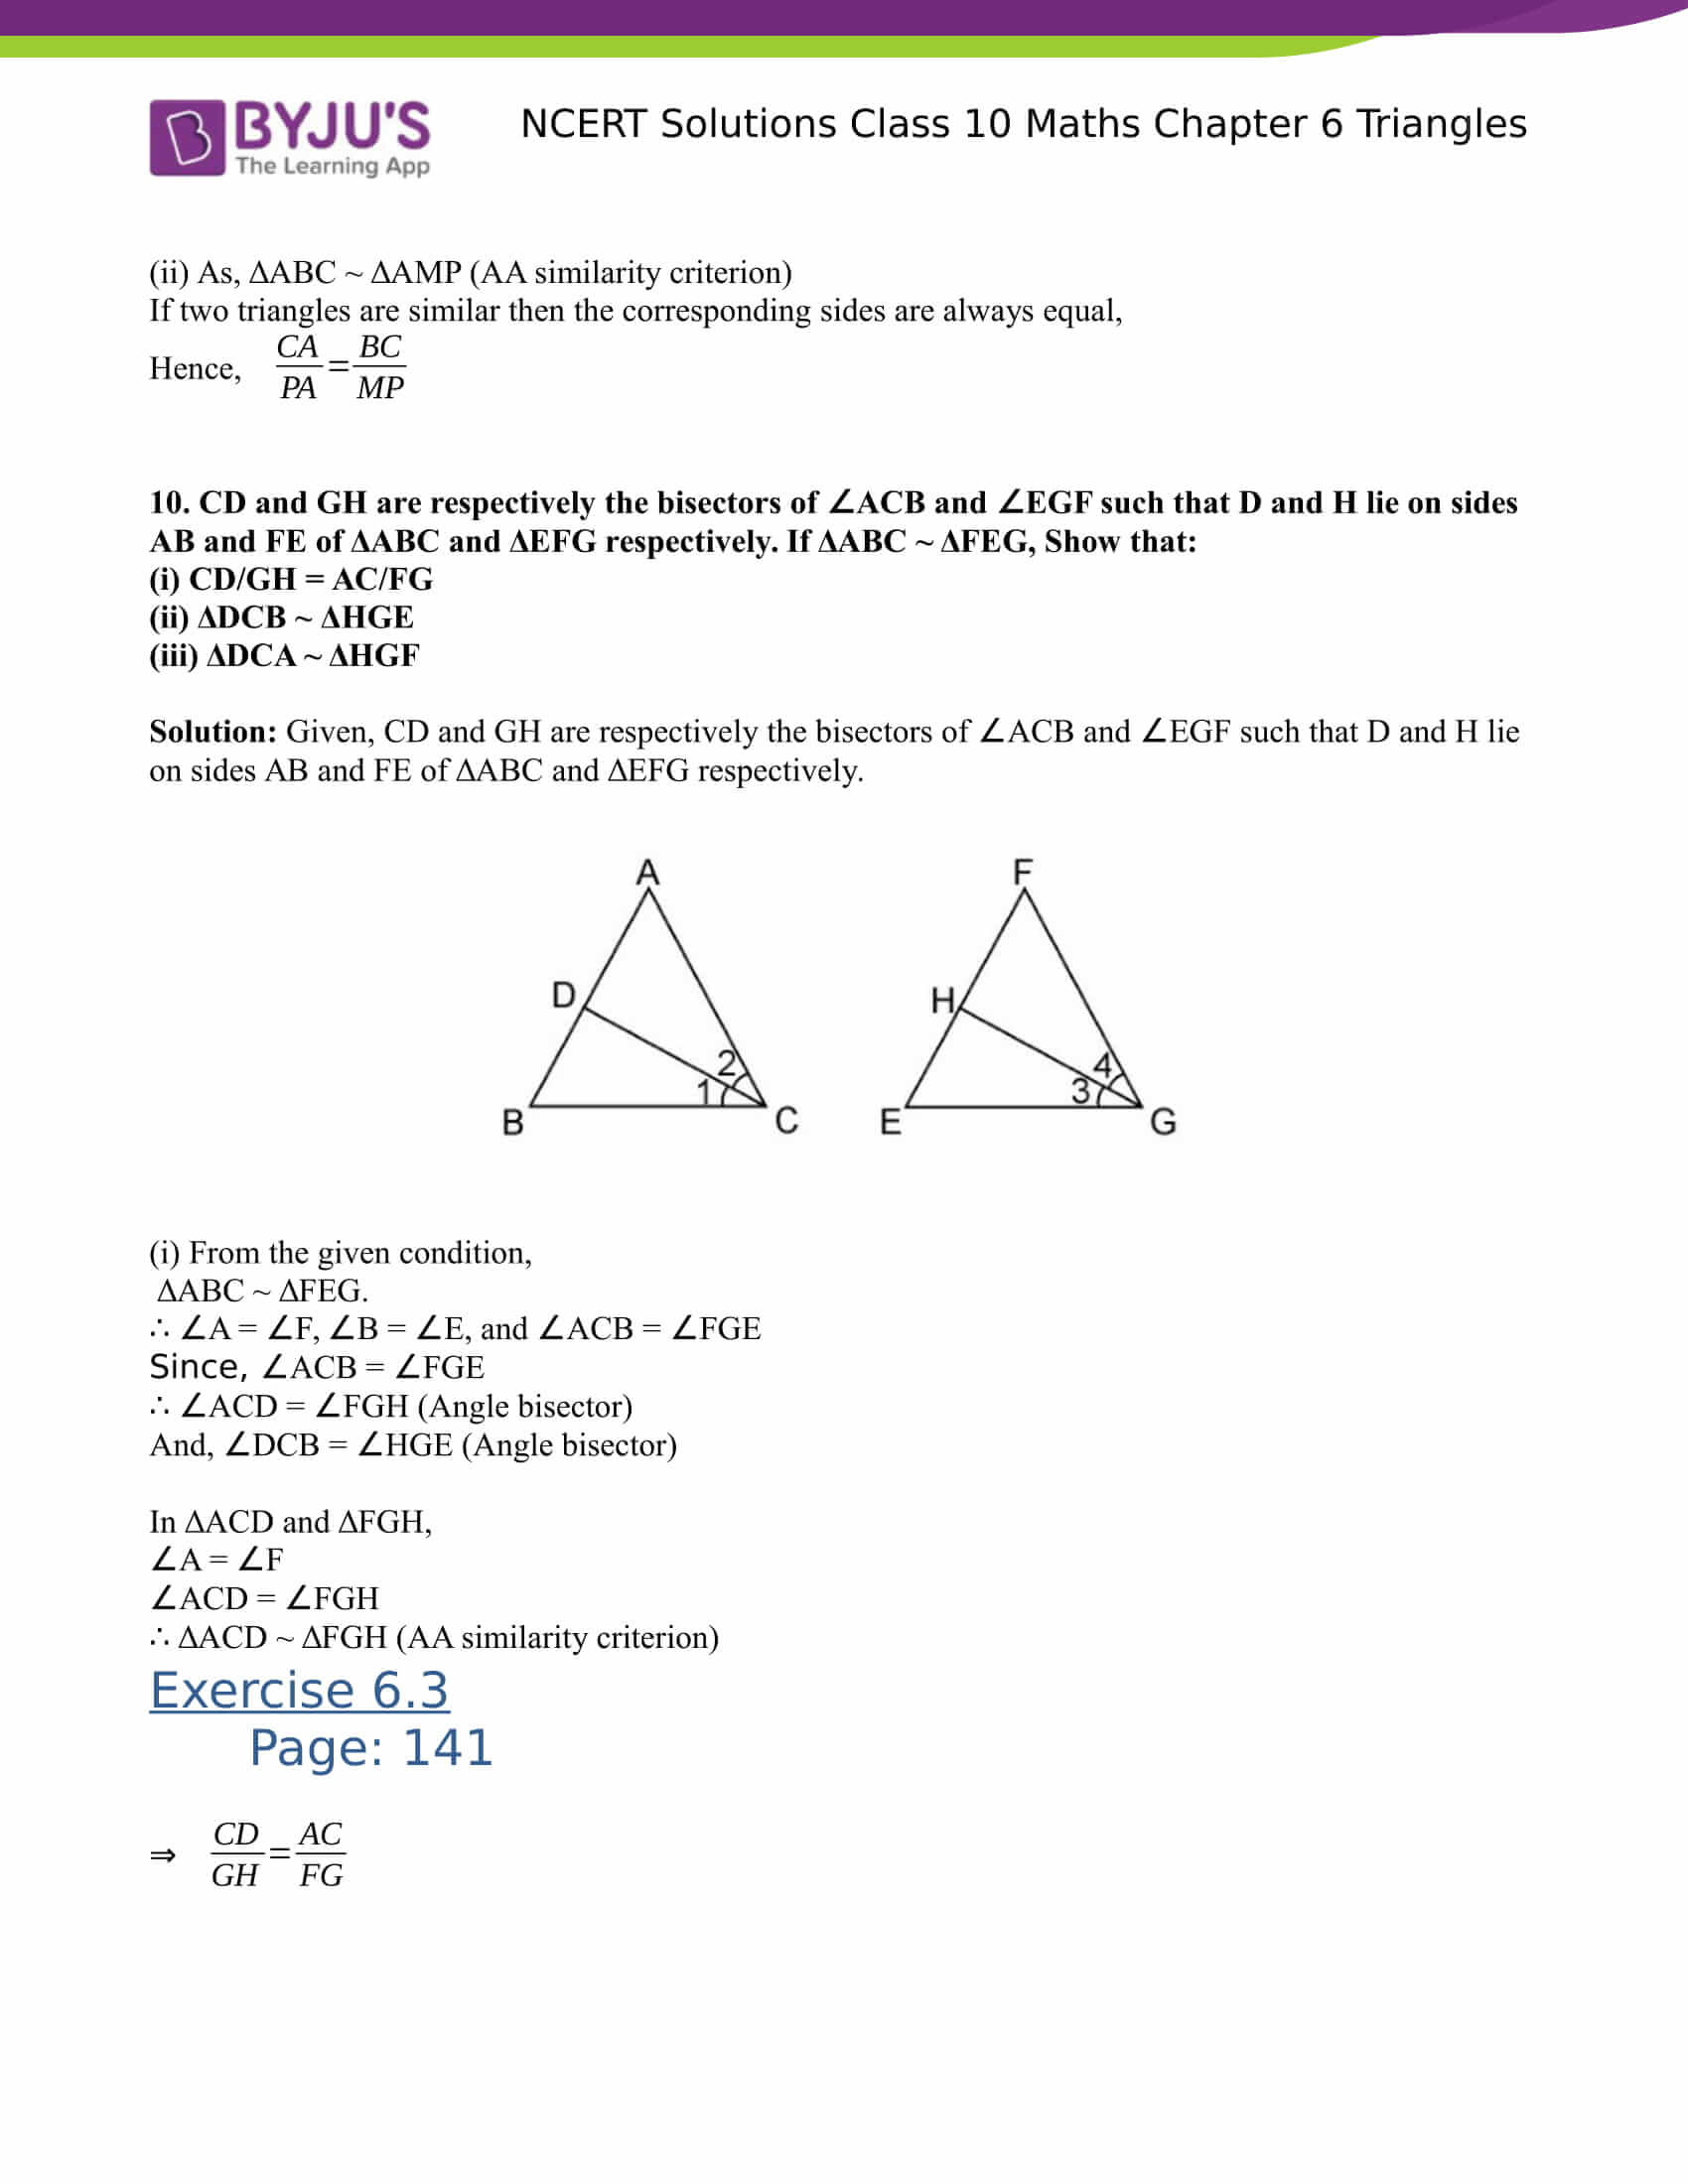 NCERT Solutions for class 10 Maths Chapter 6 Triangles Part 20